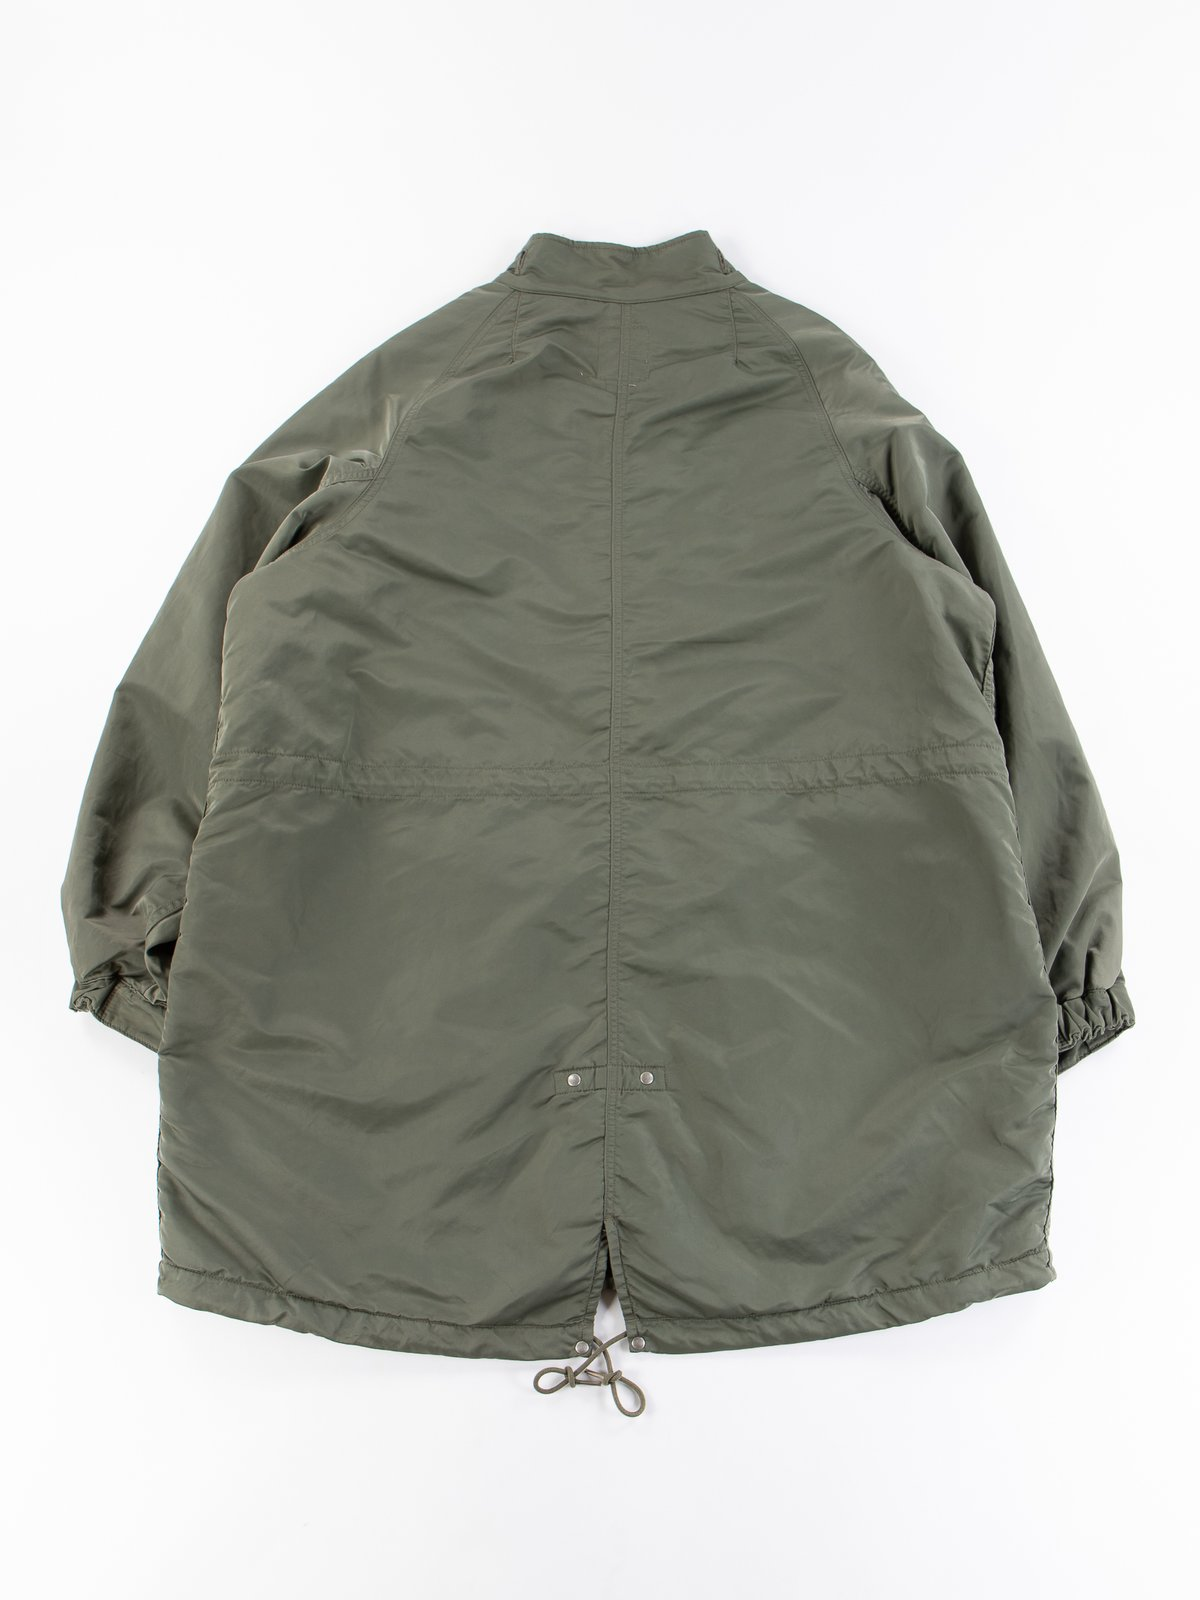 Olive Six–Five Fishtail Parka - Image 9